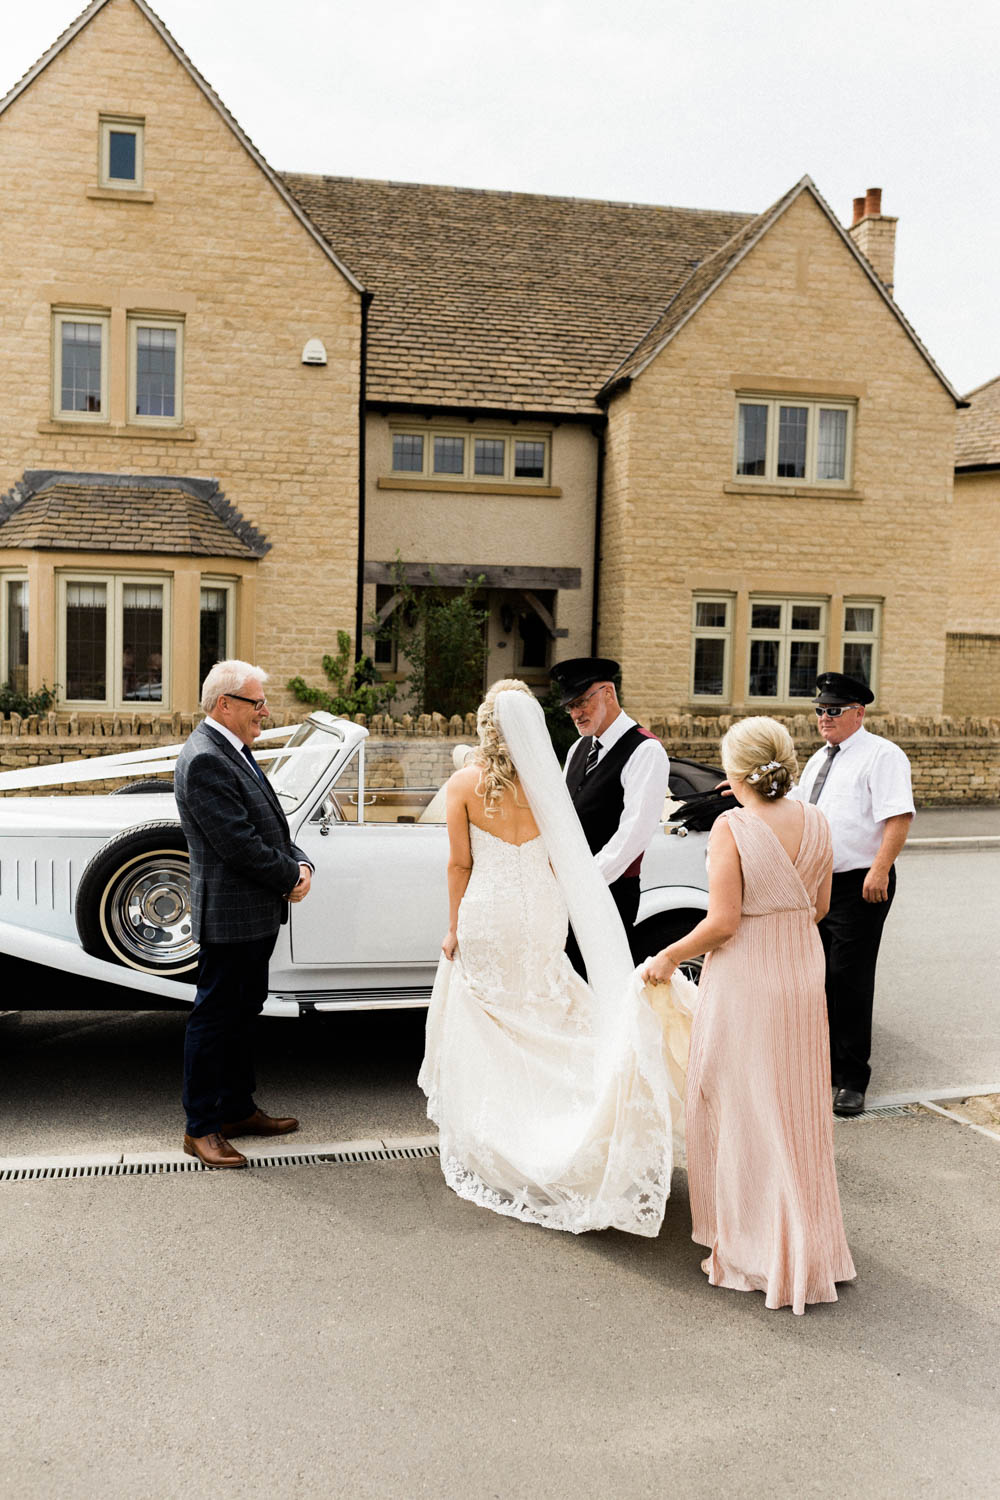 Special-Day-Photography-The-Manor-House-Hotel-Moreton-in-Marsh-Moreton-In-Marsh-Summer-Wedding-A-bride-getting-in-her-vintage-wedding-car.jpg